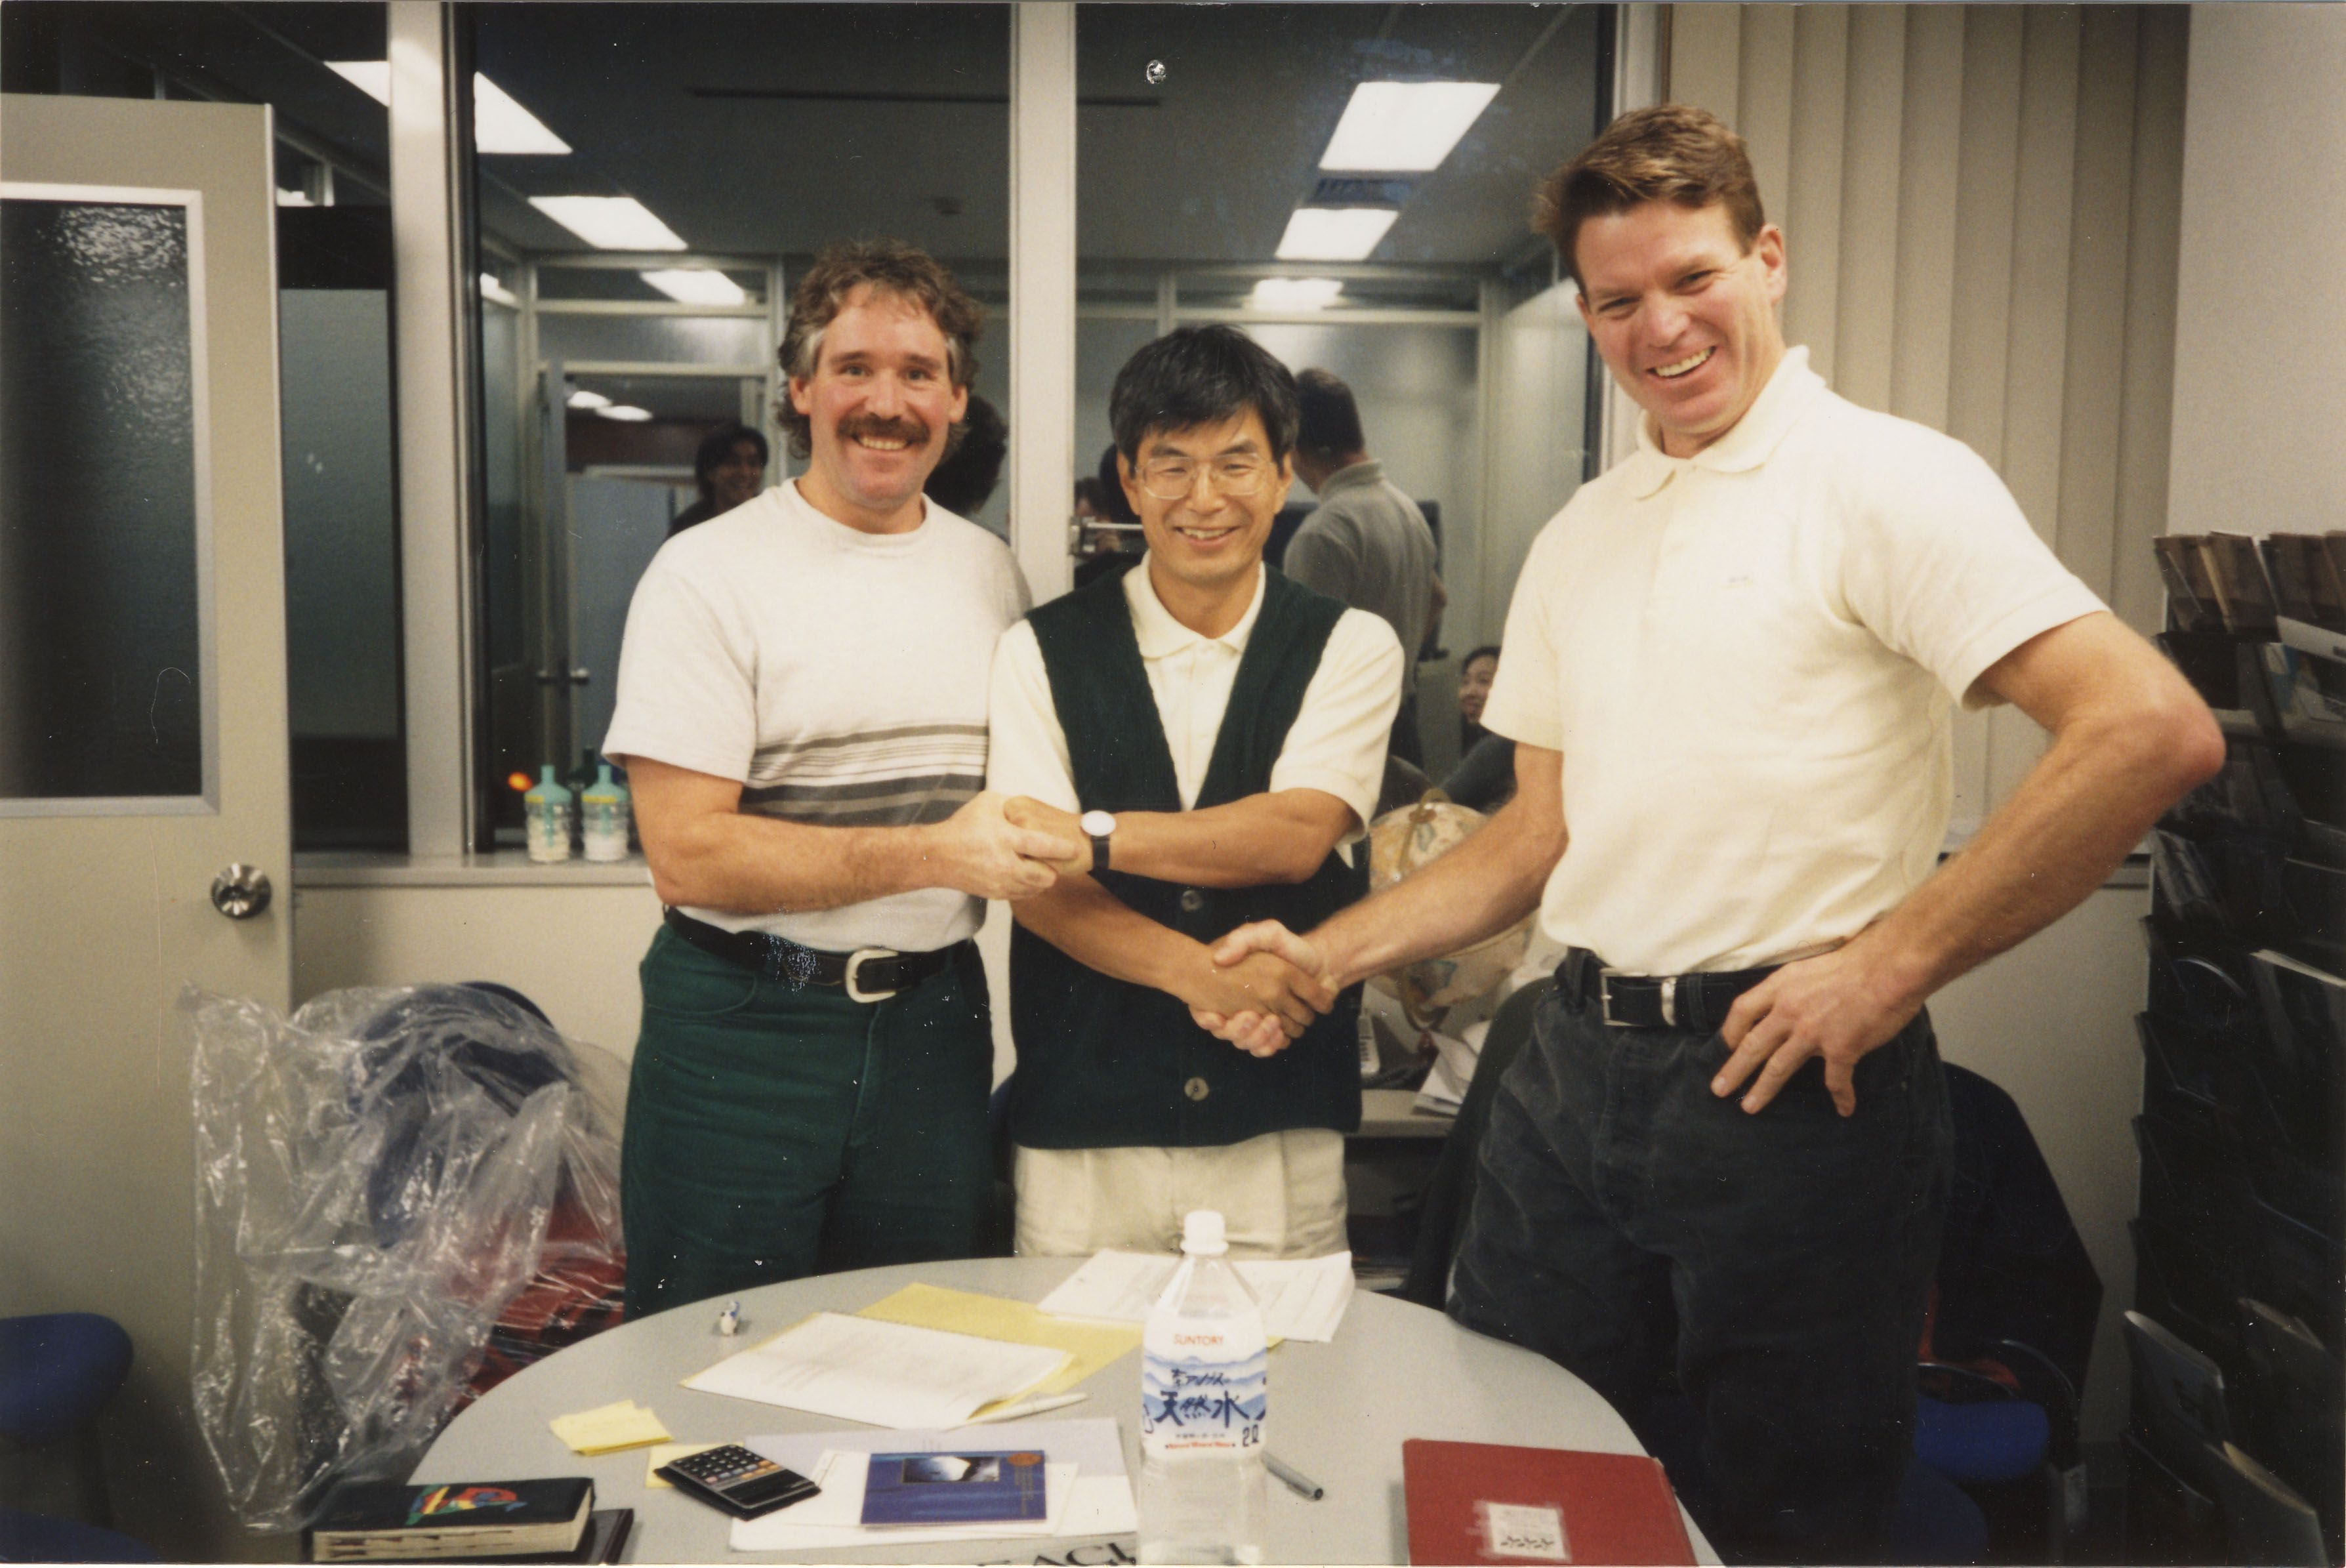 Agreement with Kano Yamanaka for Westbeach distribution in Japan, 1996